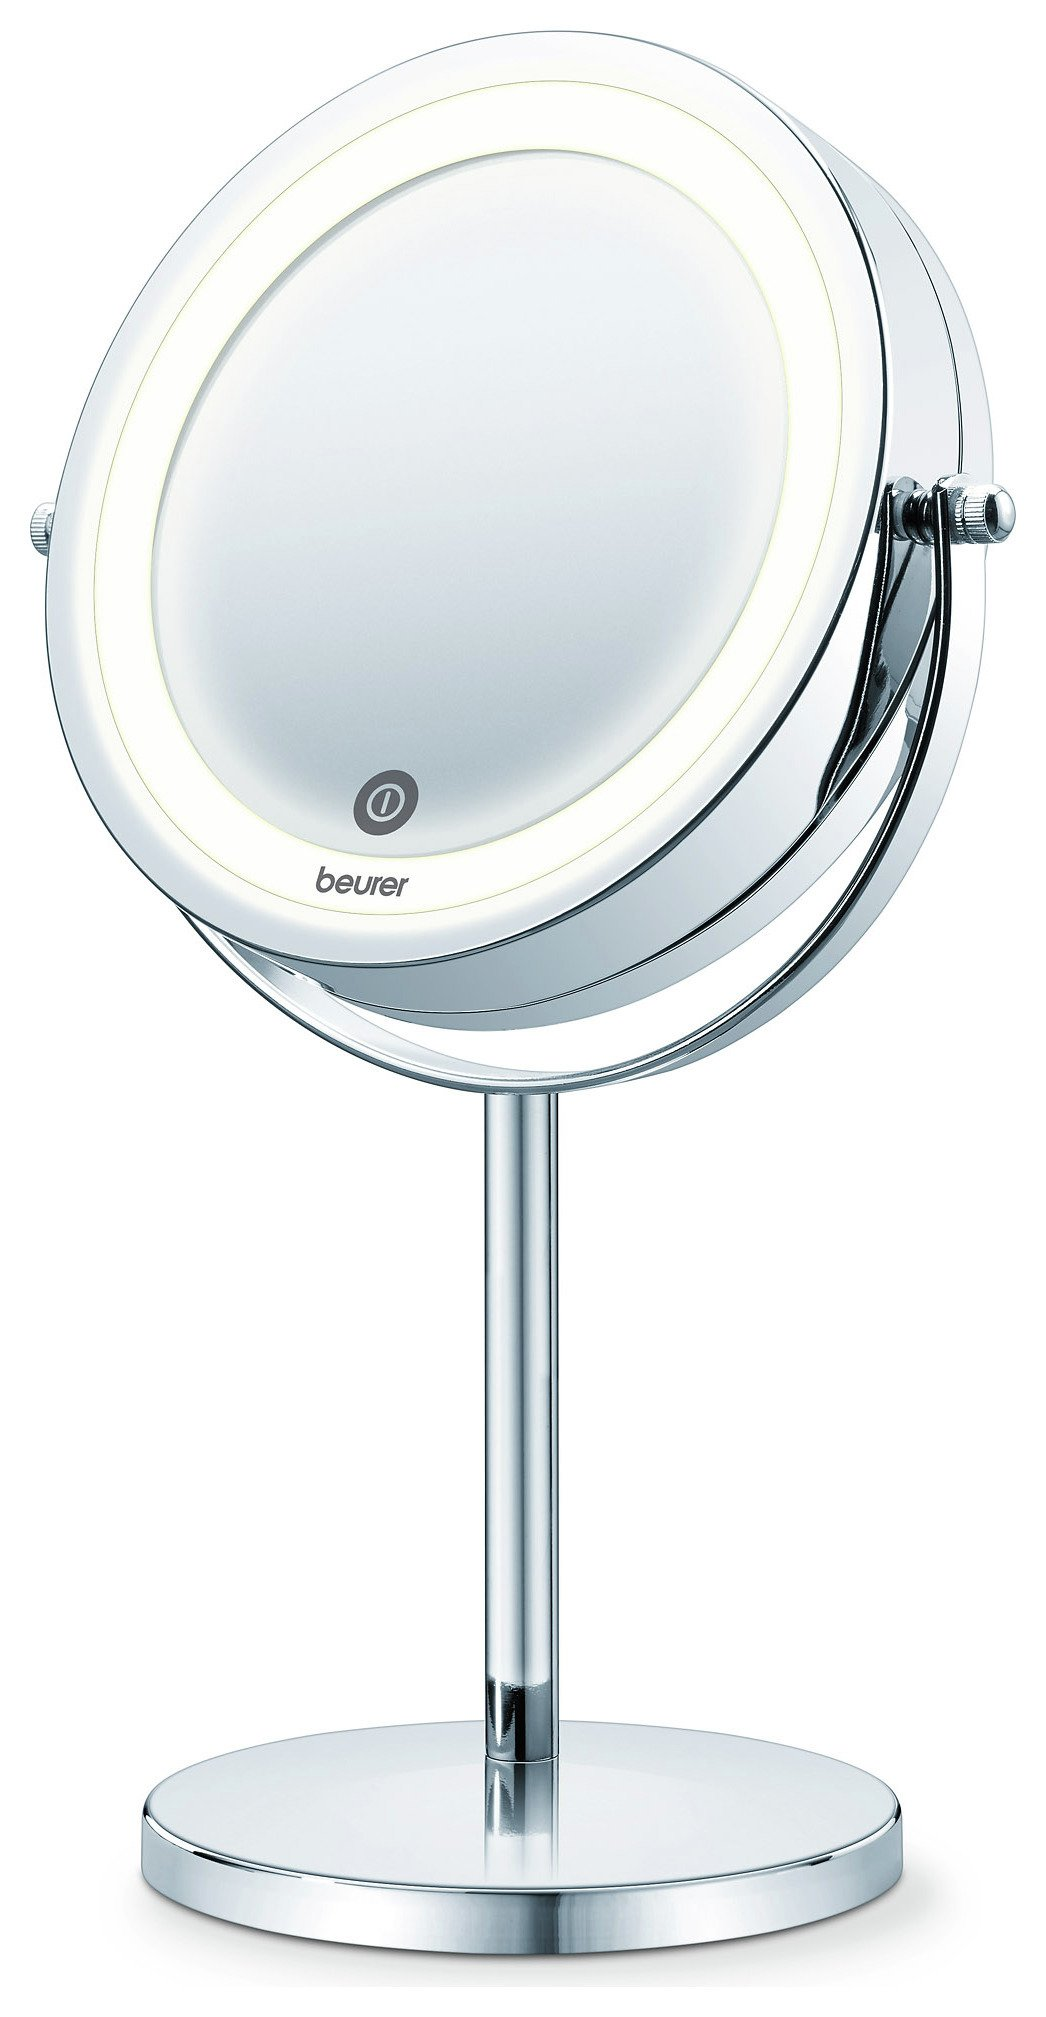 Image of Beurer BS55 Illuminated Free Standing Cosmetics Touch Mirror